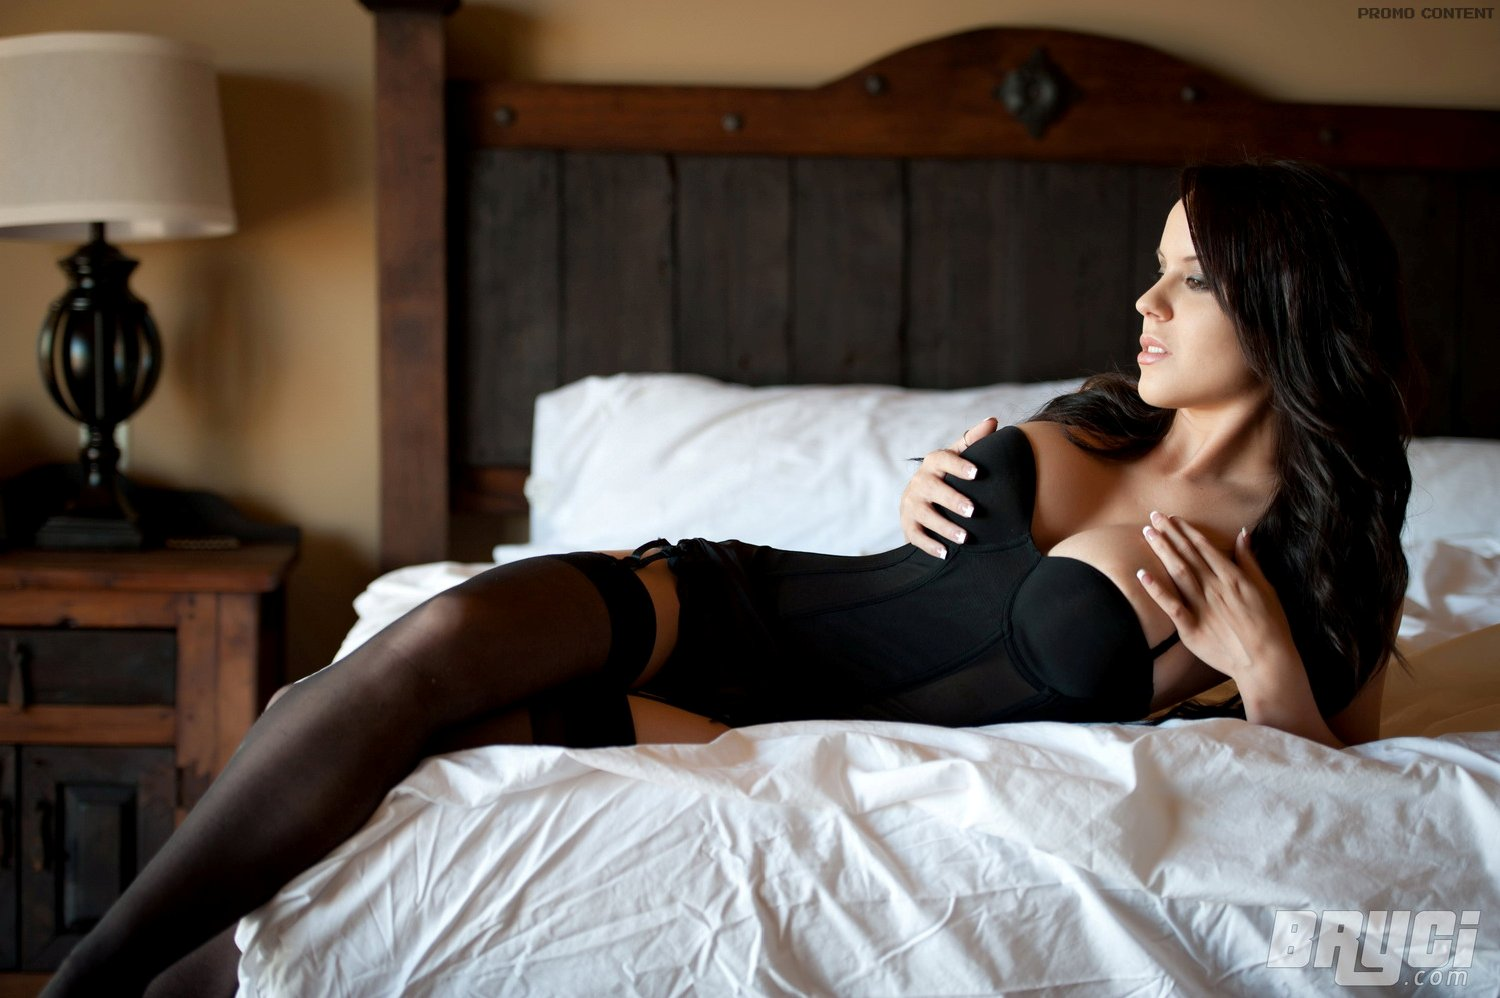 hot girl on bed - photo #23